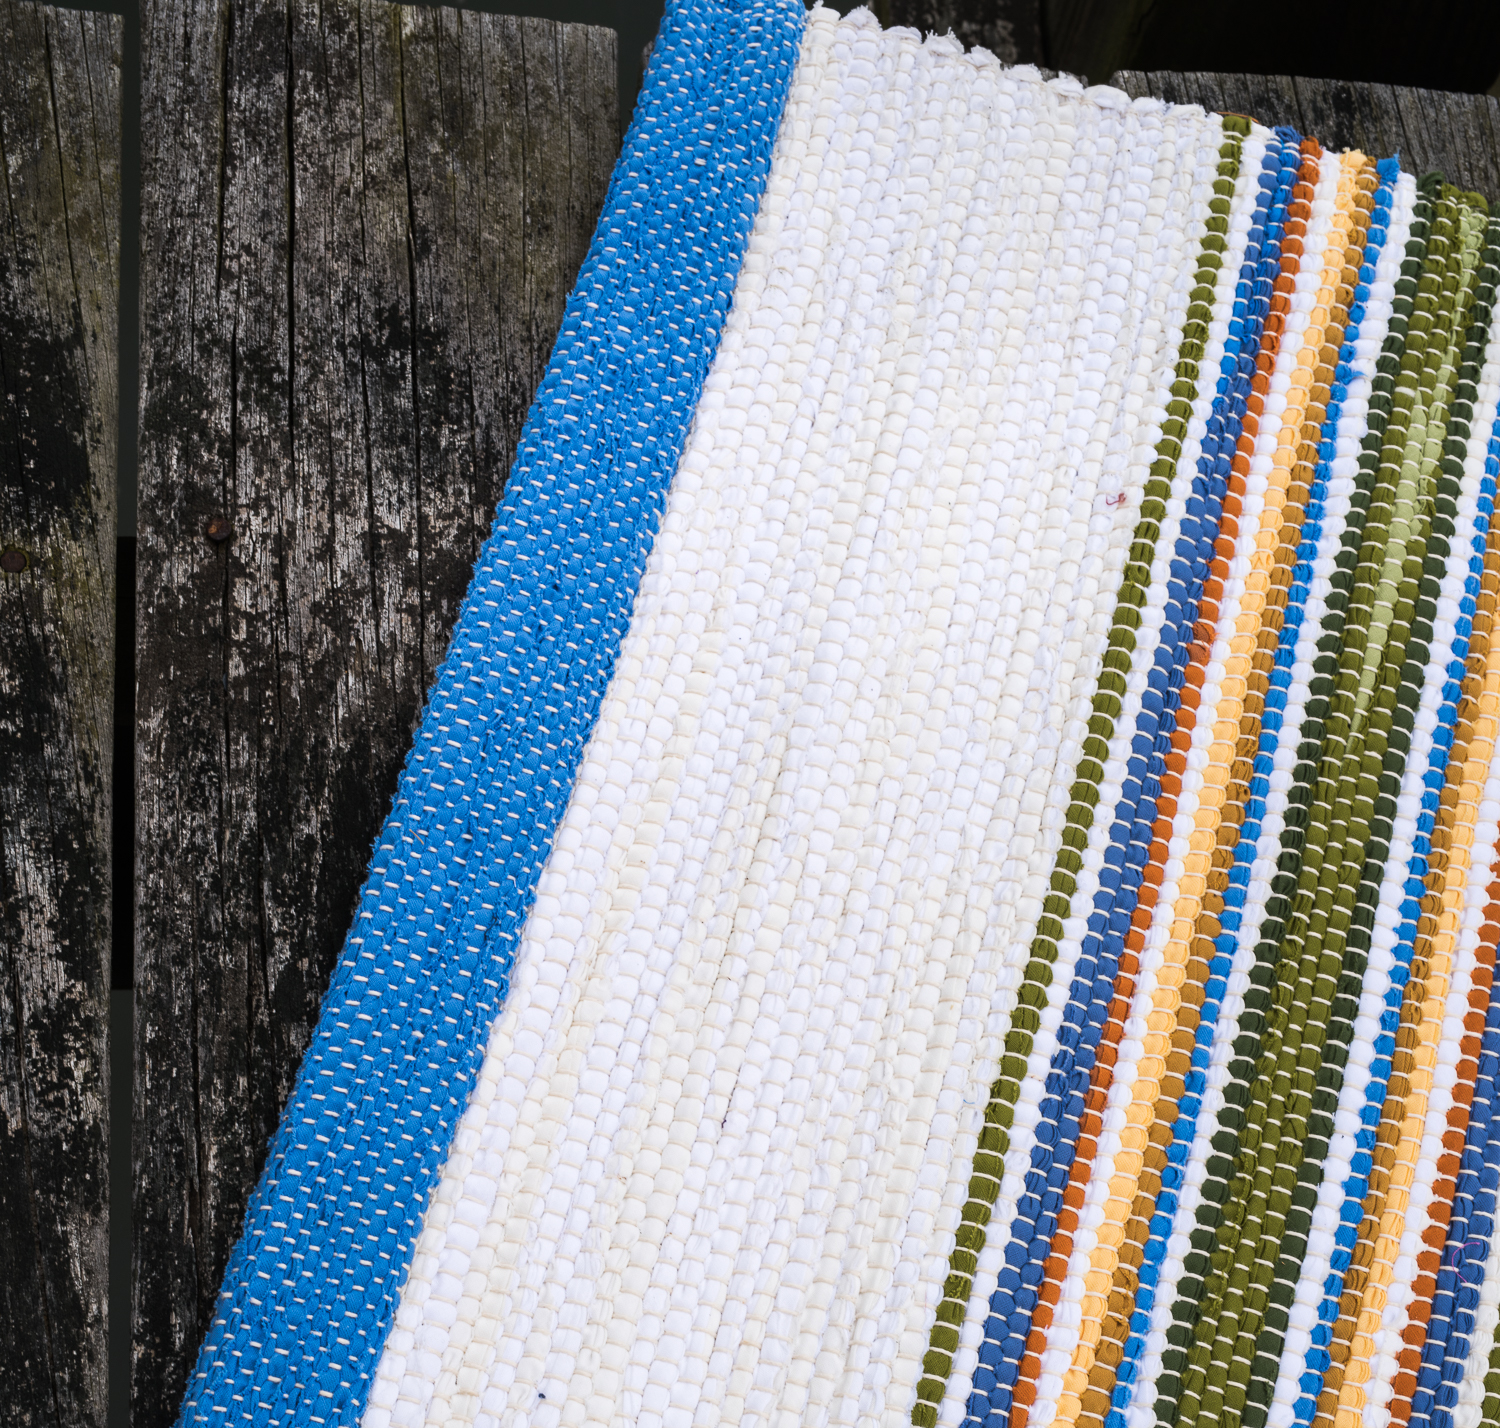 Newport Rug Coastal Collection blue and white handwoven rug detail 1